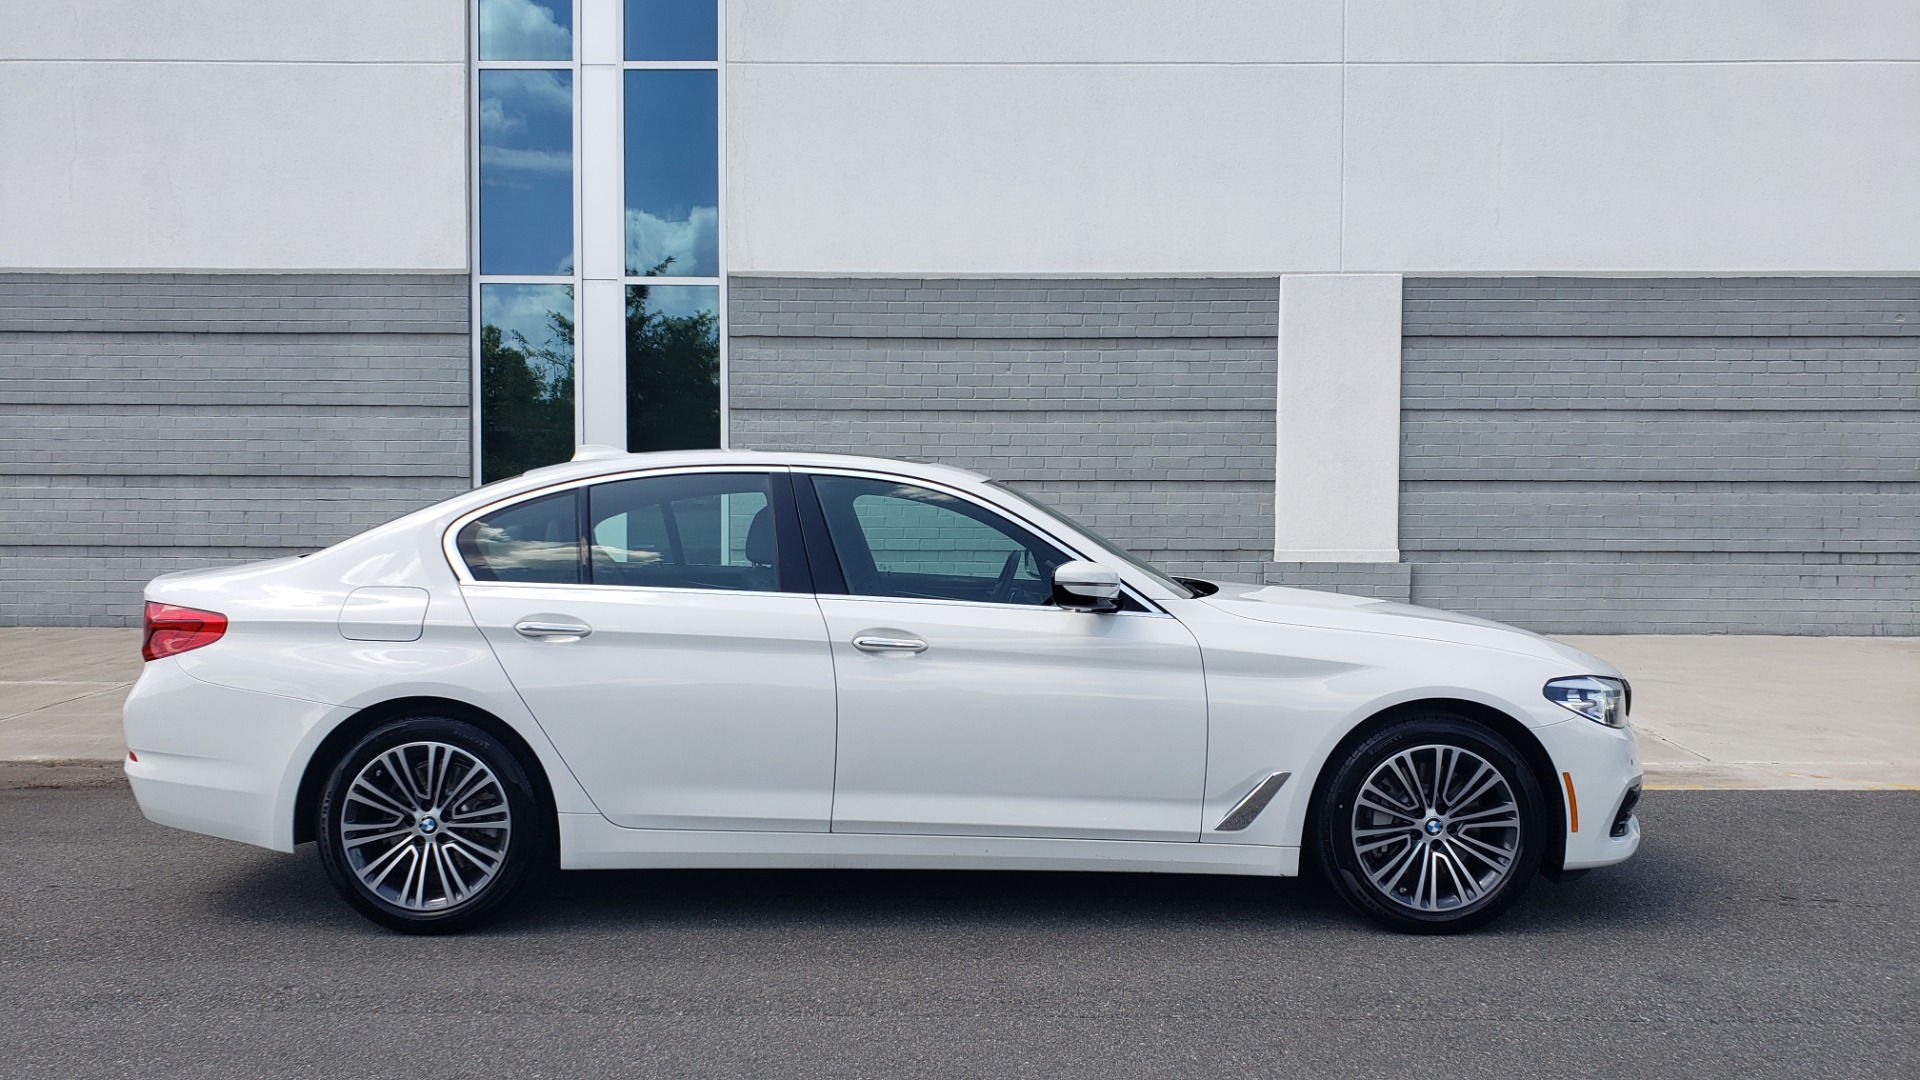 Used 2018 BMW 5 SERIES 530I XDRIVE PREMIUM / PARK ASST / NAV / SUNROOF / REARIEW for sale $37,795 at Formula Imports in Charlotte NC 28227 8